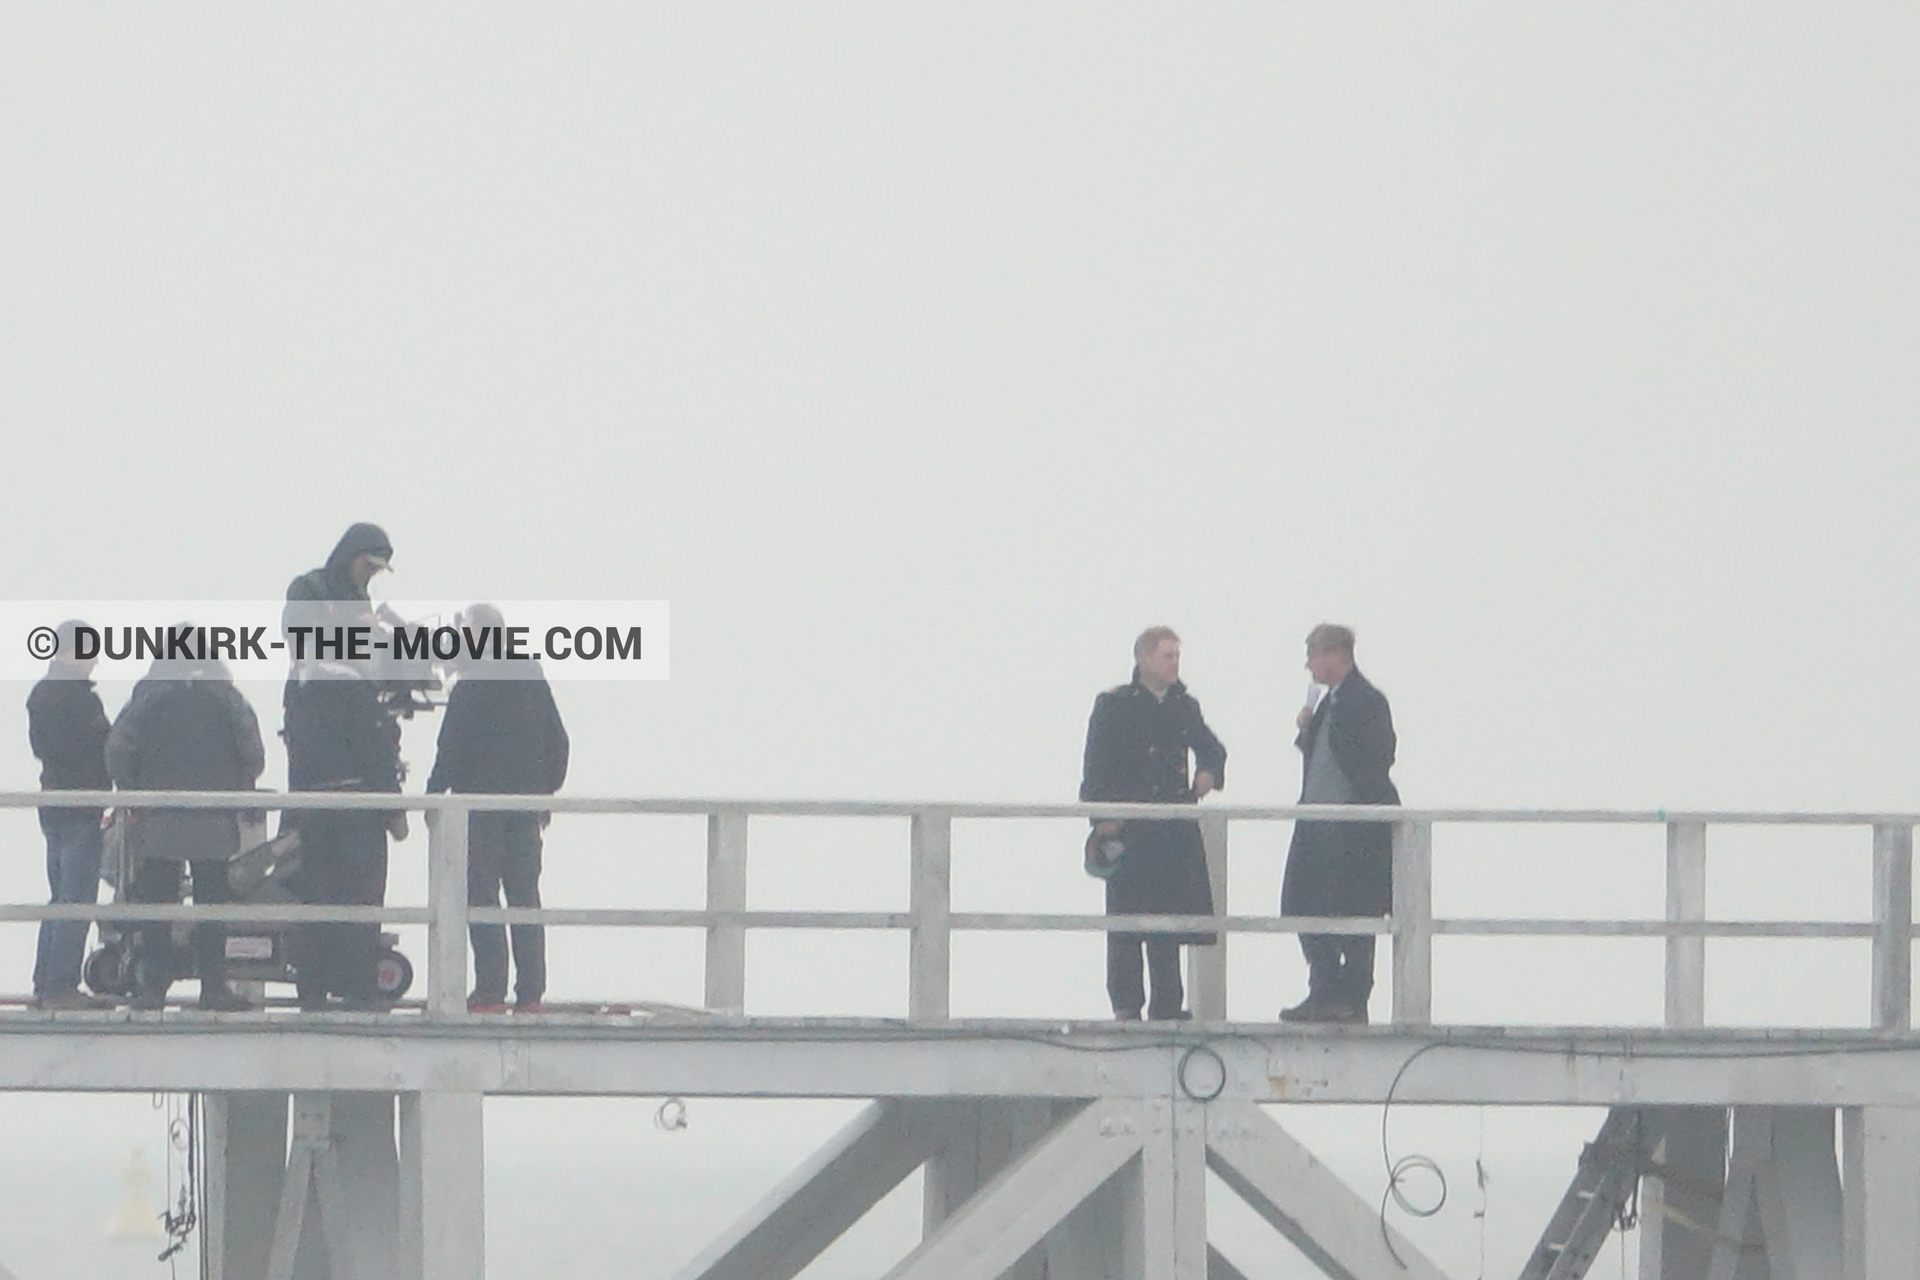 Picture with IMAX camera, Hoyte van Hoytema, EST pier, Kenneth Branagh, Christopher Nolan, technical team,  from behind the scene of the Dunkirk movie by Nolan